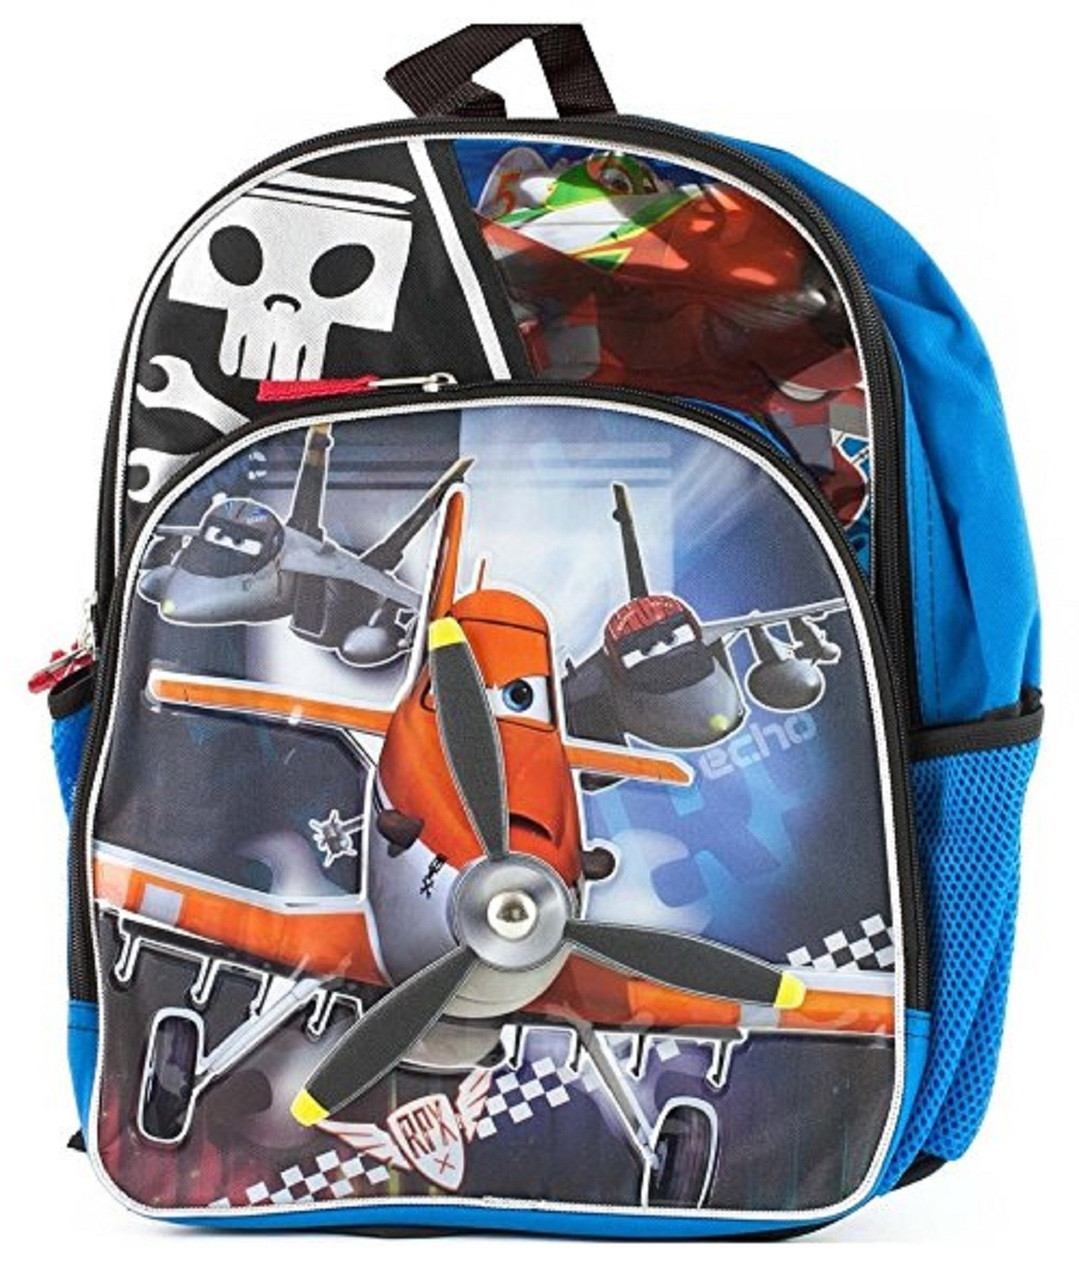 Planes - Large 16 Inch - Backpack - Boys